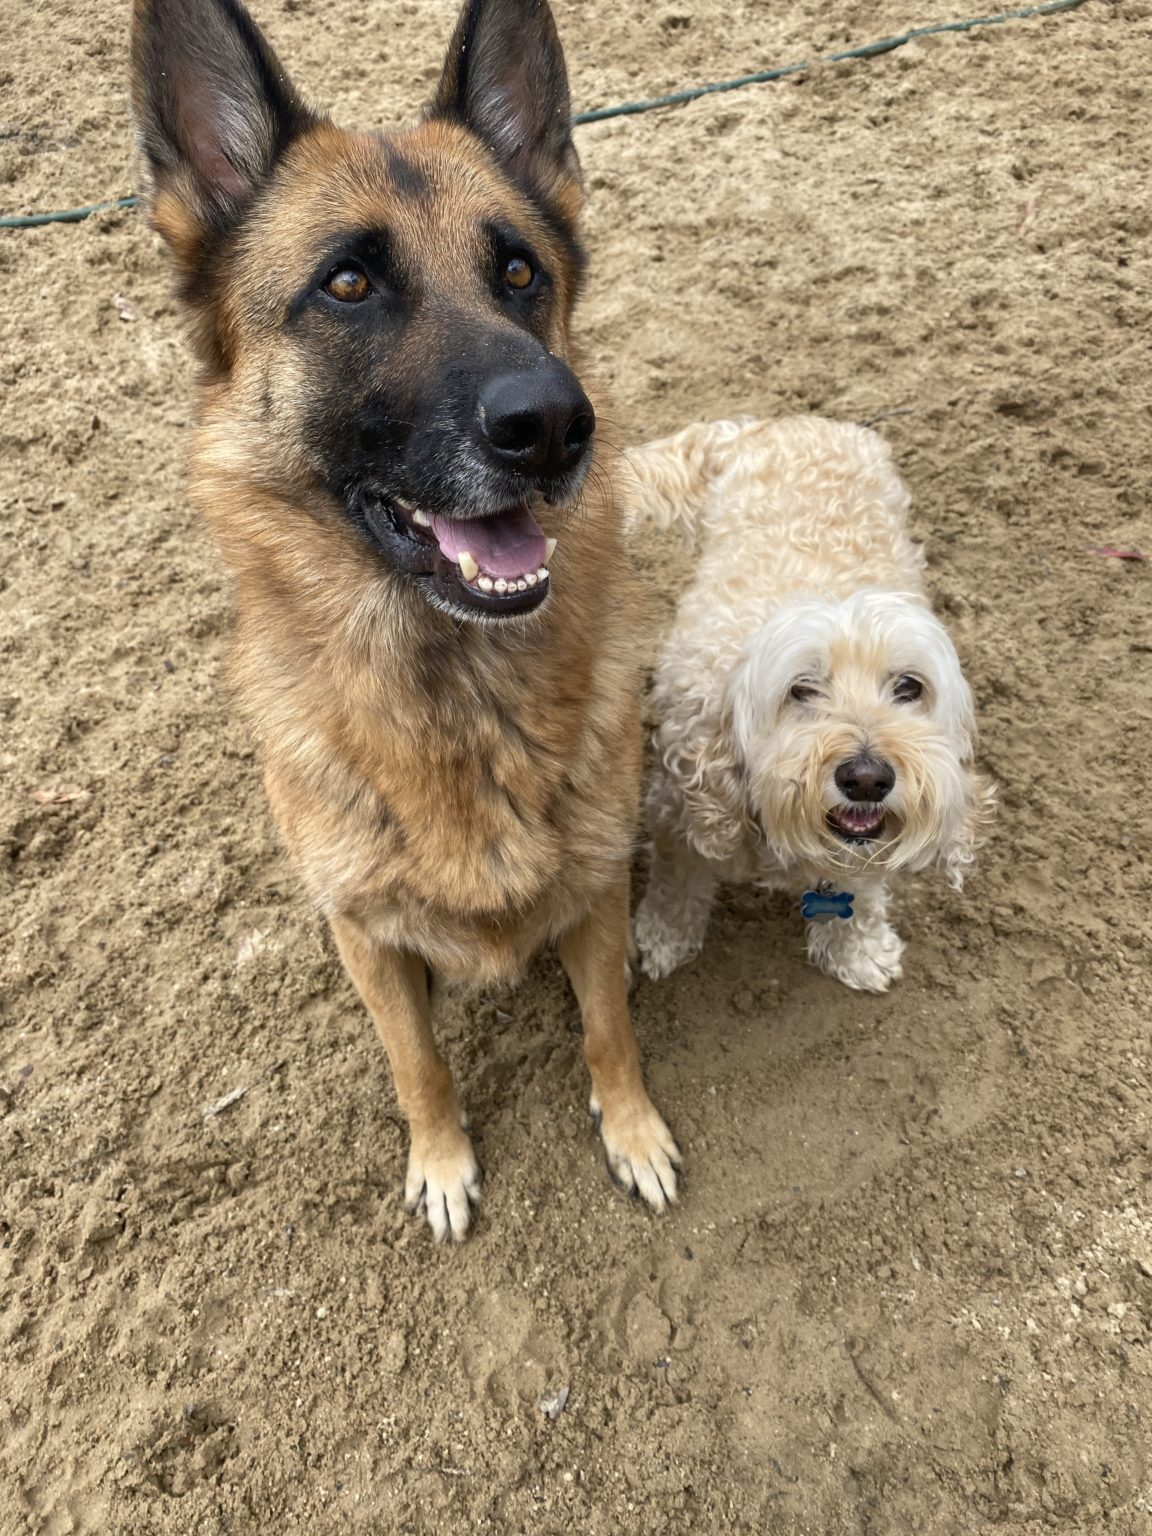 Two dogs at dog daycare near Hobart